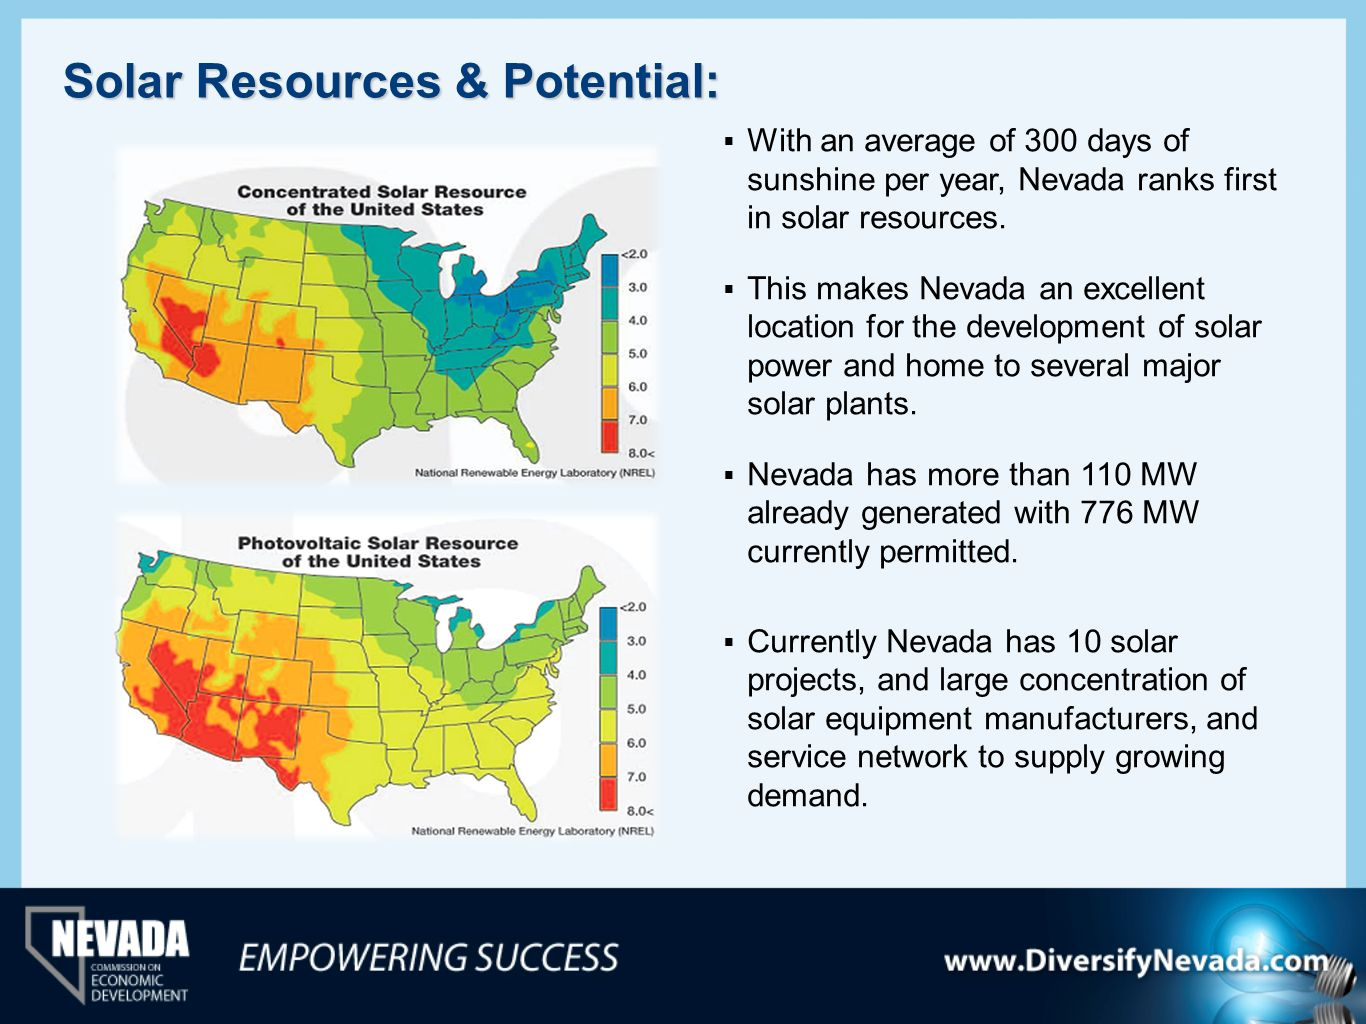 Solar Resources & Potential: